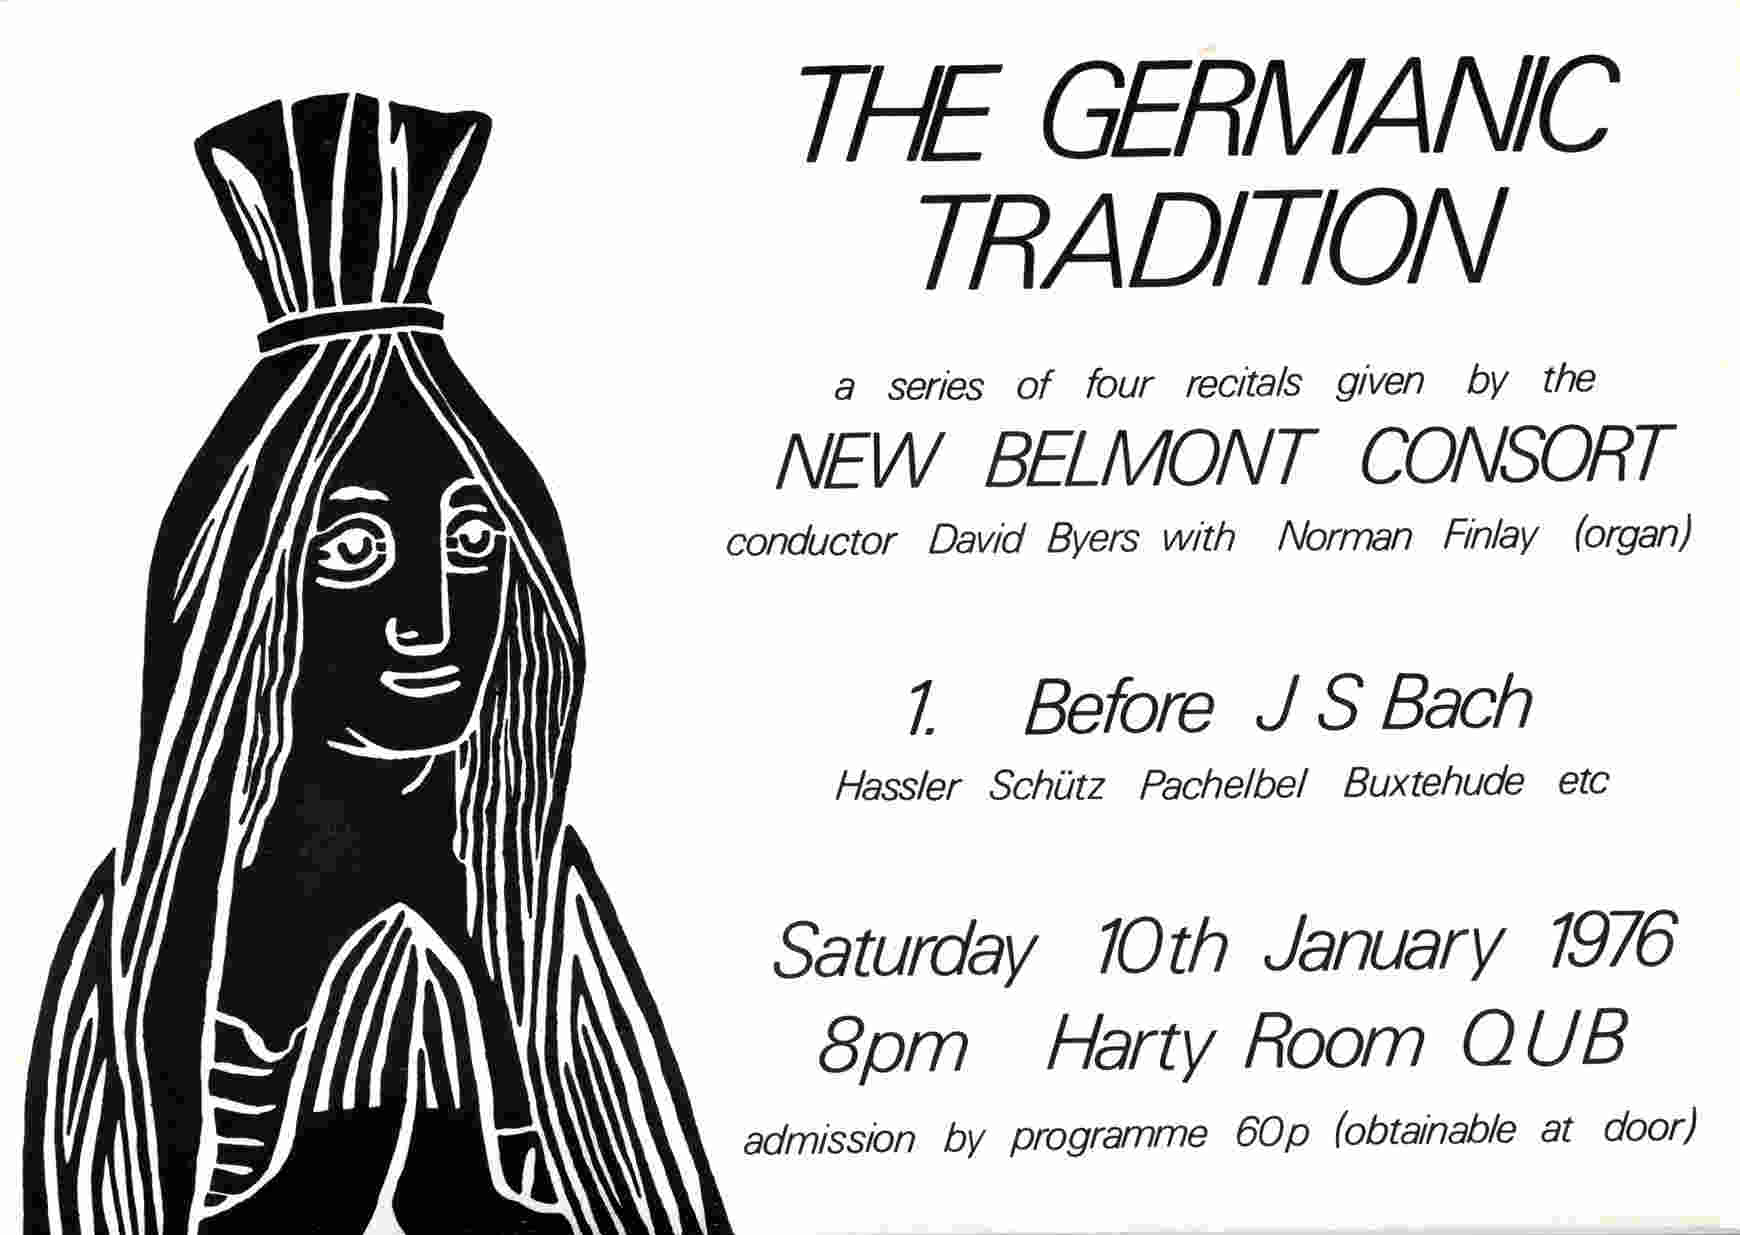 New Belmont Consort Germanic 1